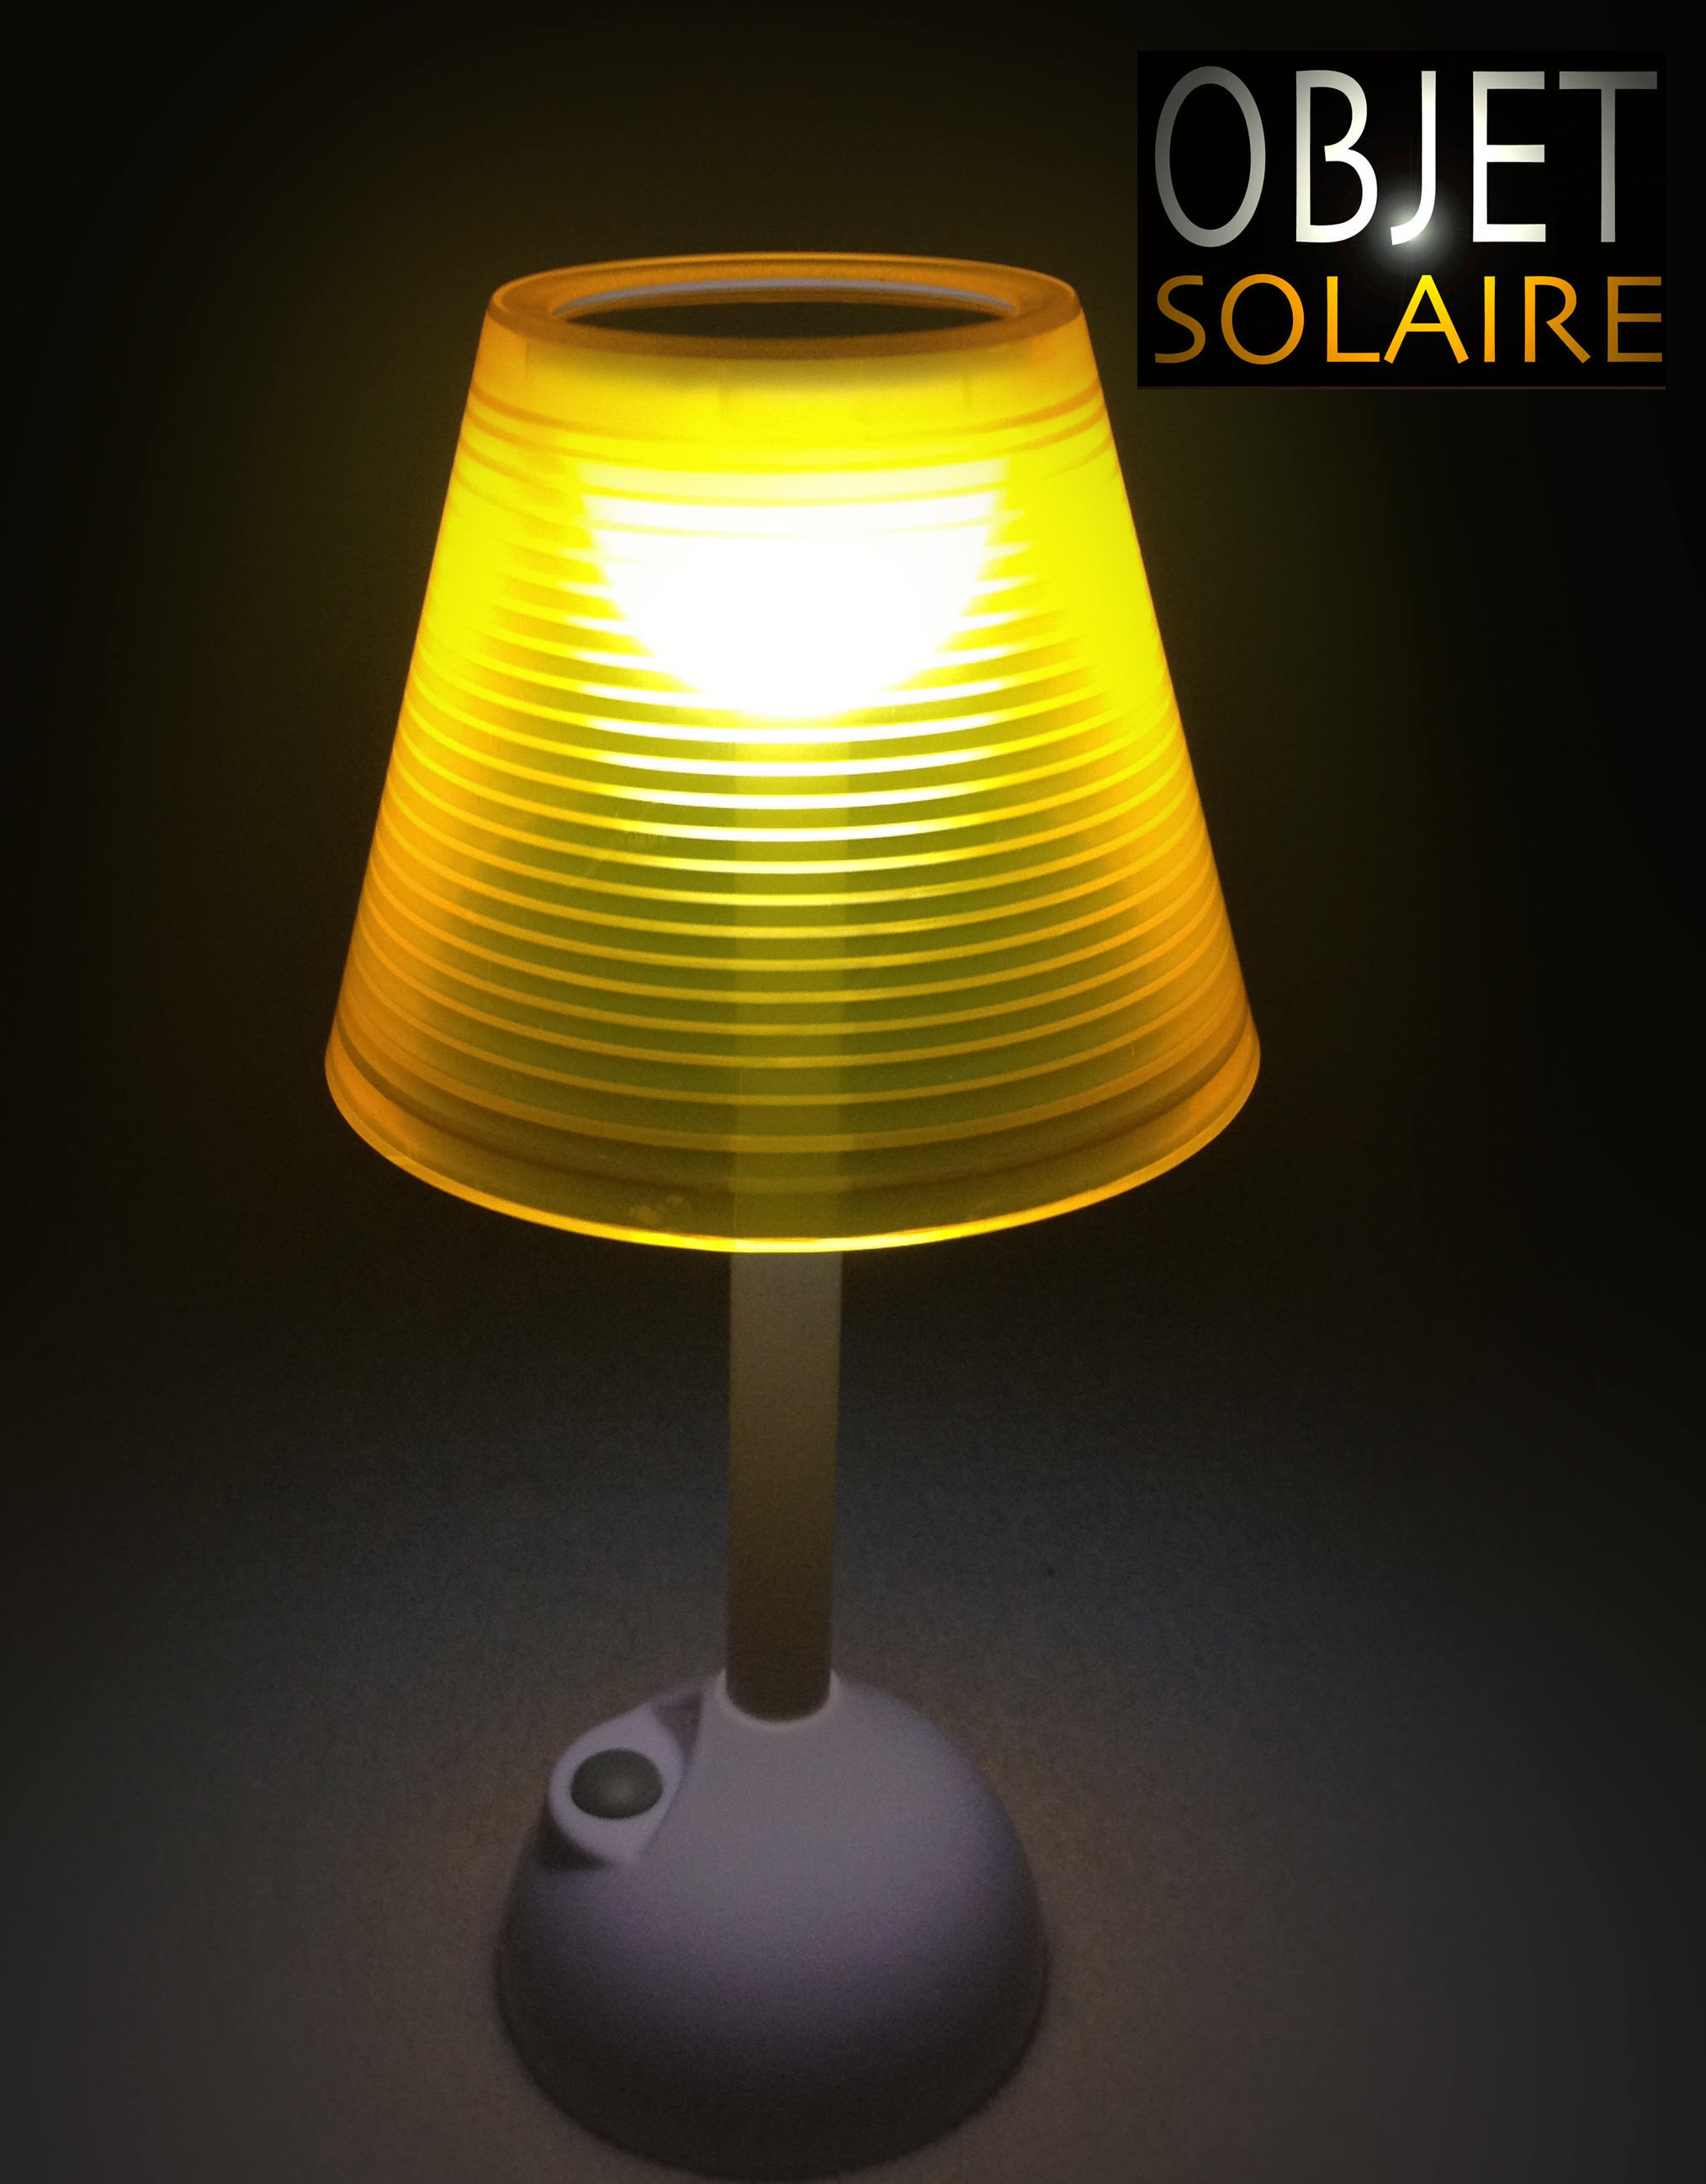 lampe solaire et usb lampes solaires decoratives table objetsolaire. Black Bedroom Furniture Sets. Home Design Ideas